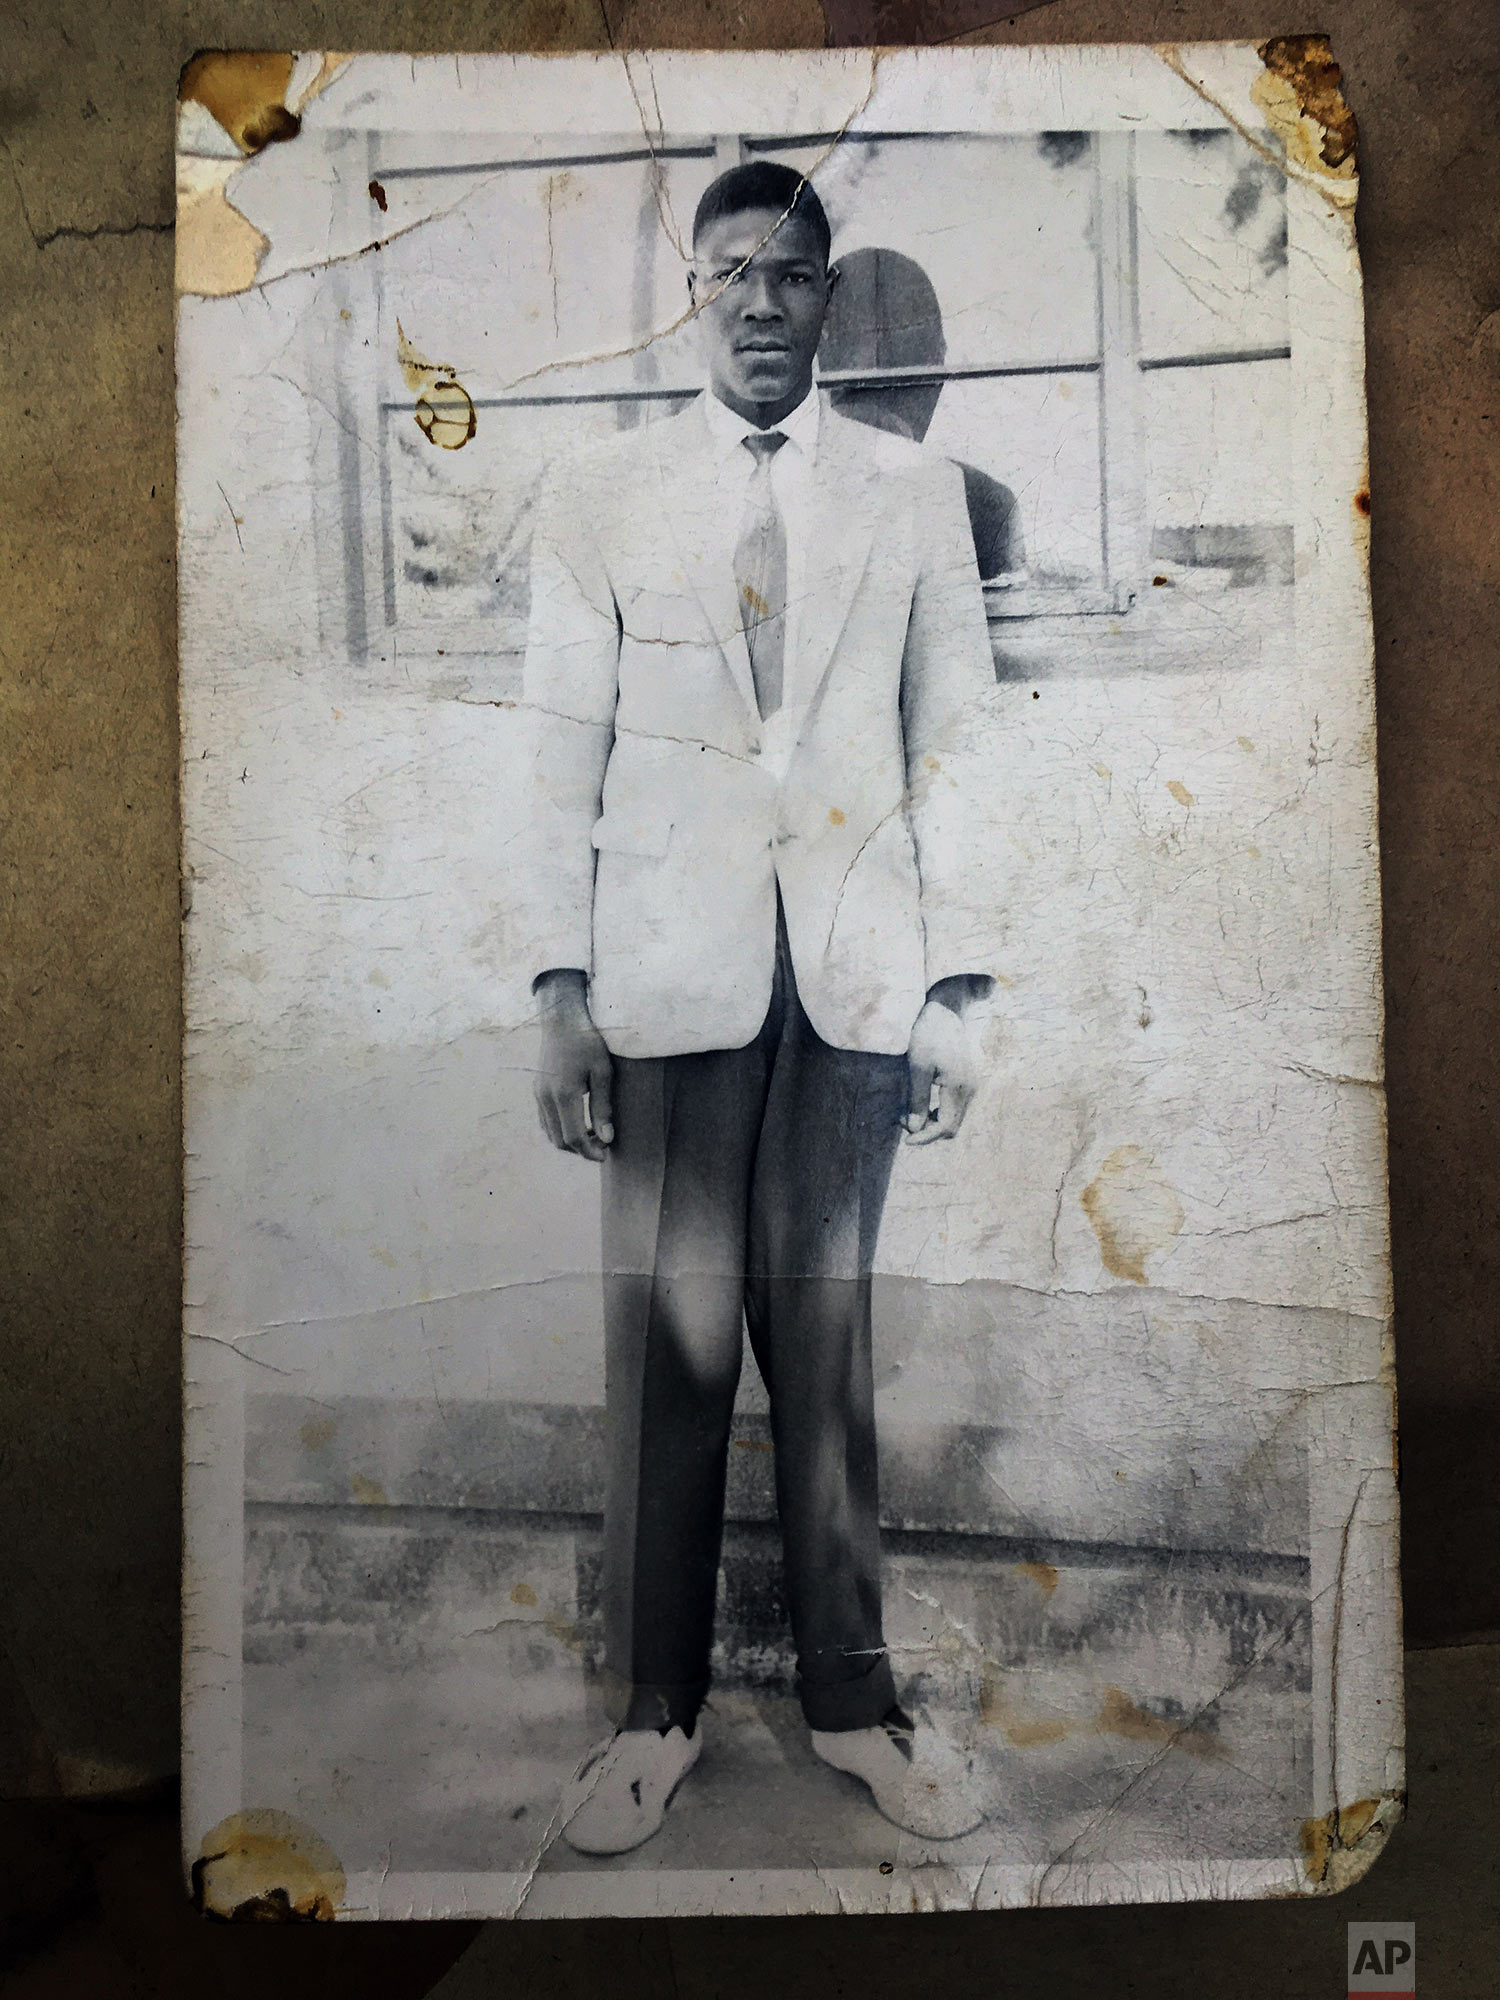 This photograph provided by the family shows Julius Mvulo Nyathi, before he was killed over 30 years ago by Zimbabwean soldiers during the Matabeleland Massacres. (AP Photo/Family of Julius Mvulo Nyathi)